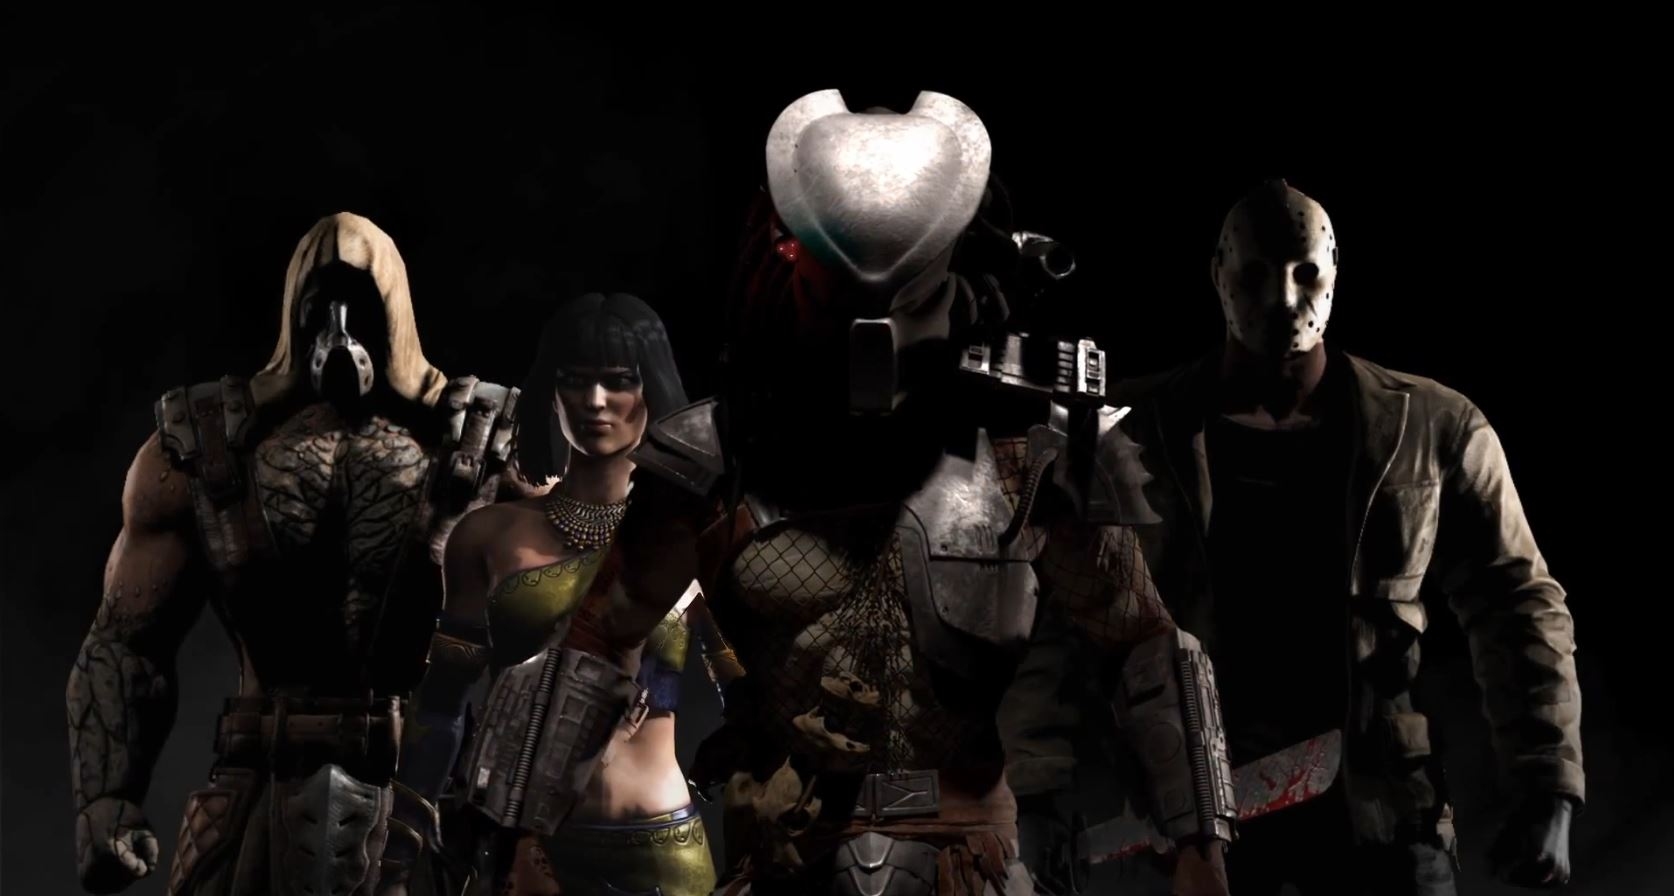 Mortal Kombat X: Kombat Pack Full Details Revealed